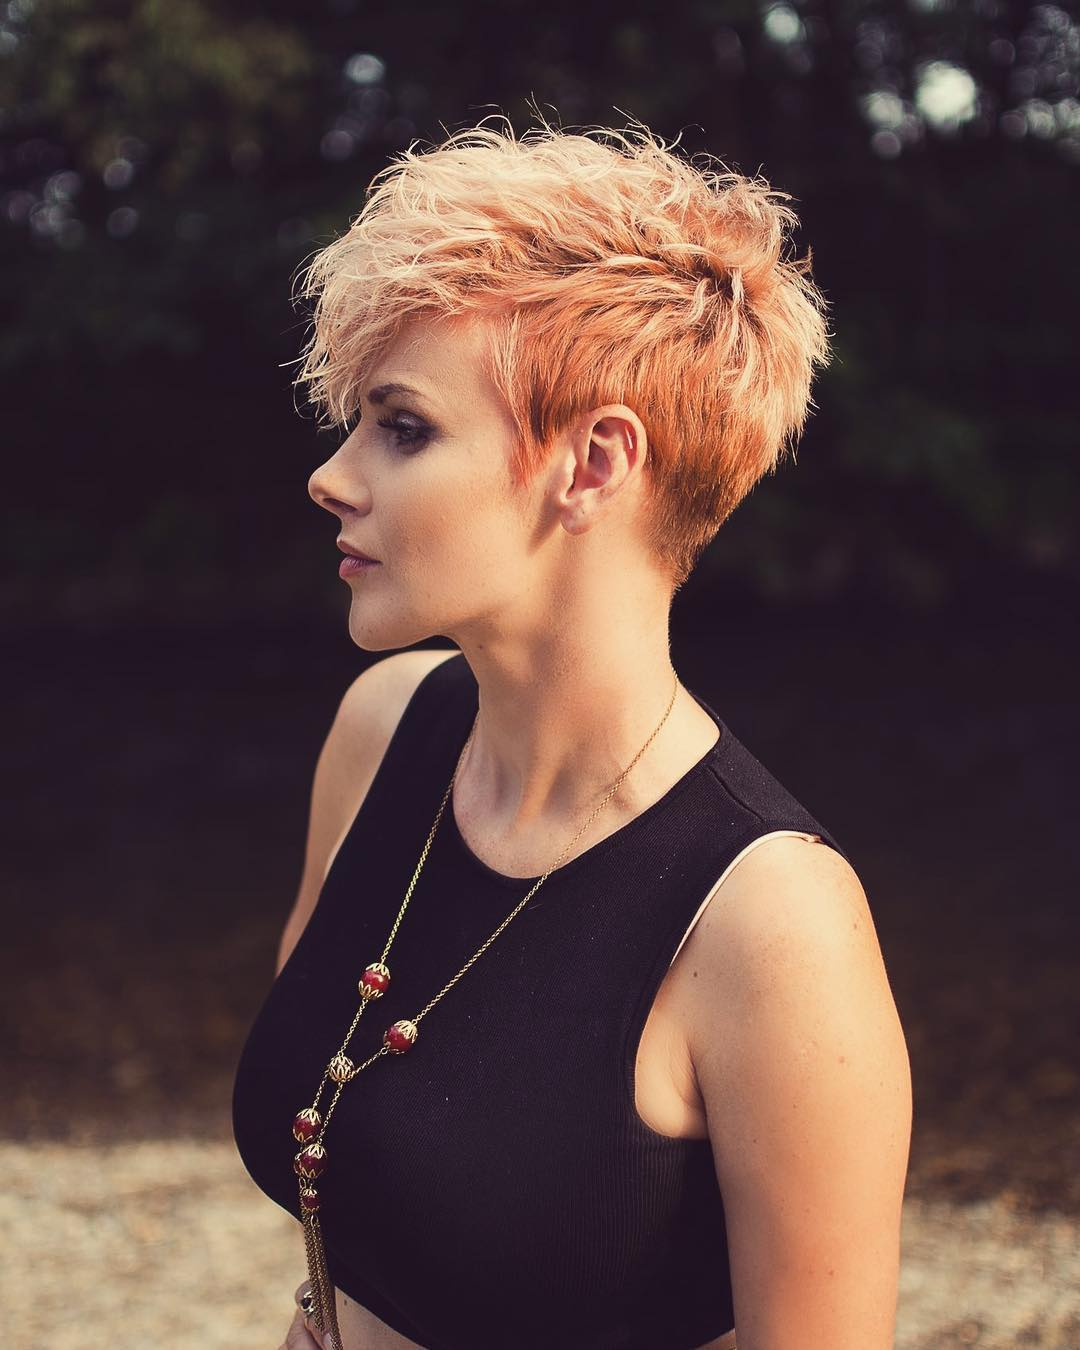 stylish-pixie-cut-designs-women-short-hairstyles-for-summer